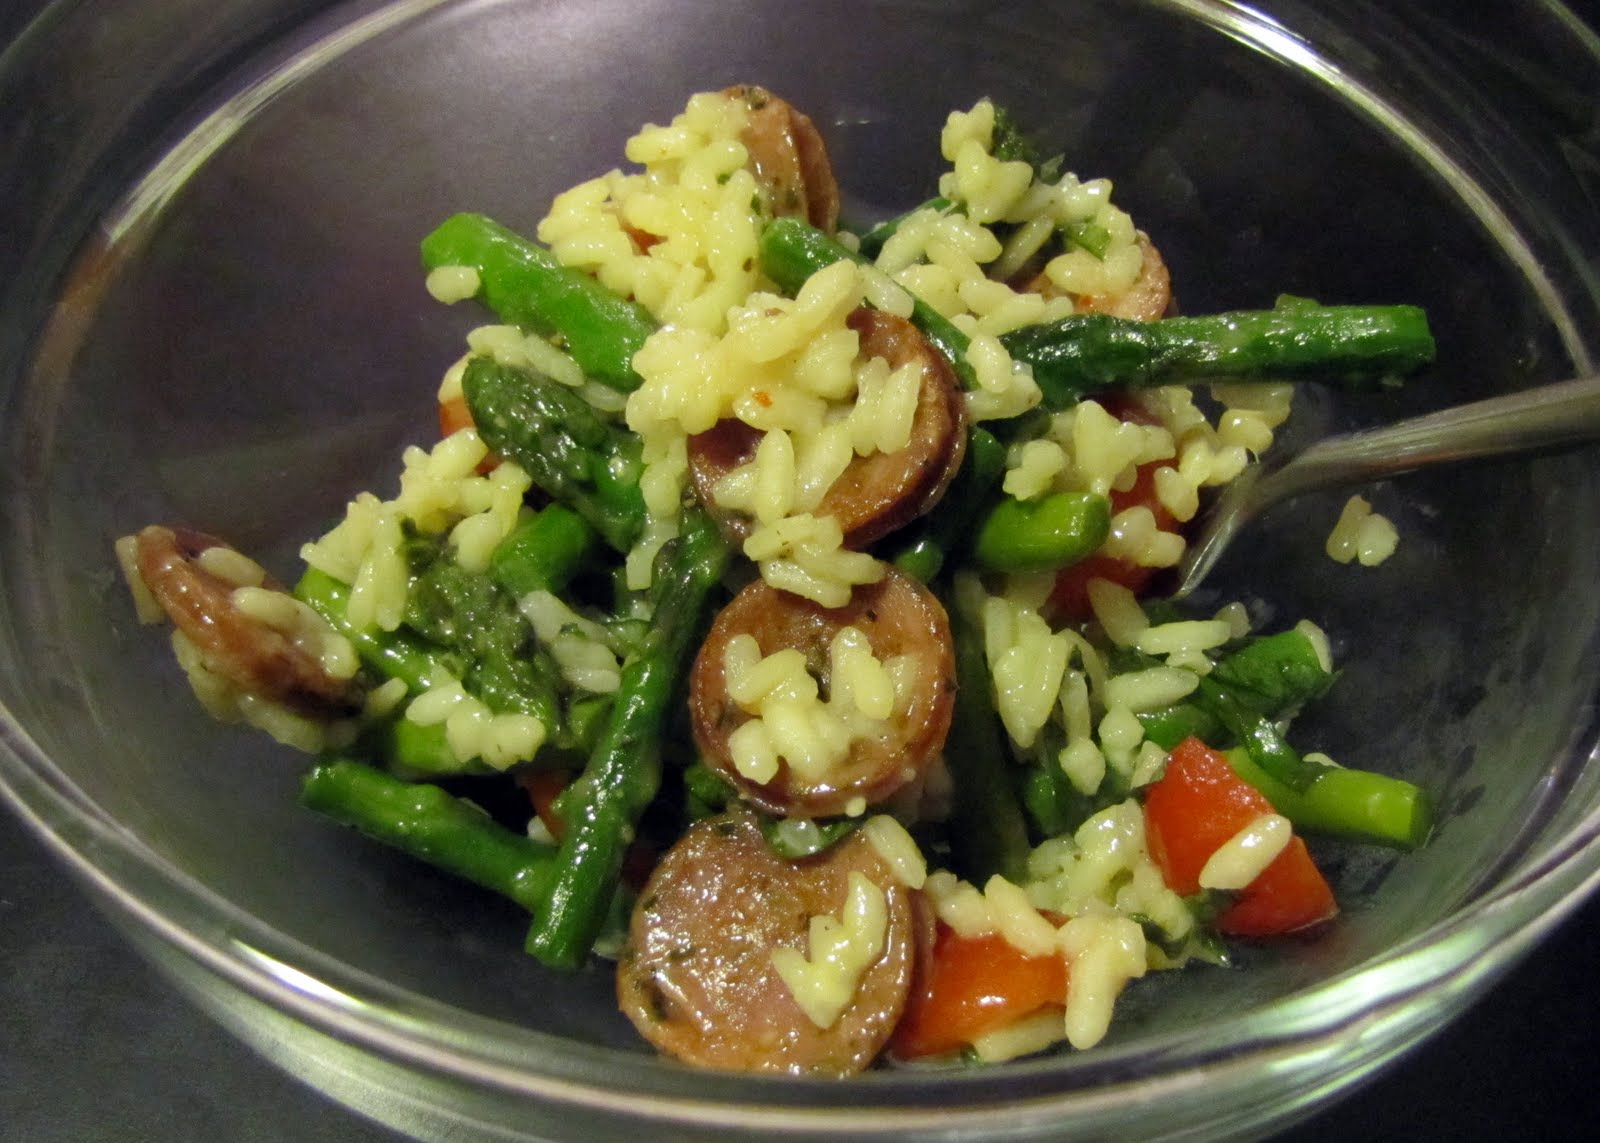 Smells Like Food in Here: Risotto with Sausage and Thick Asparagus